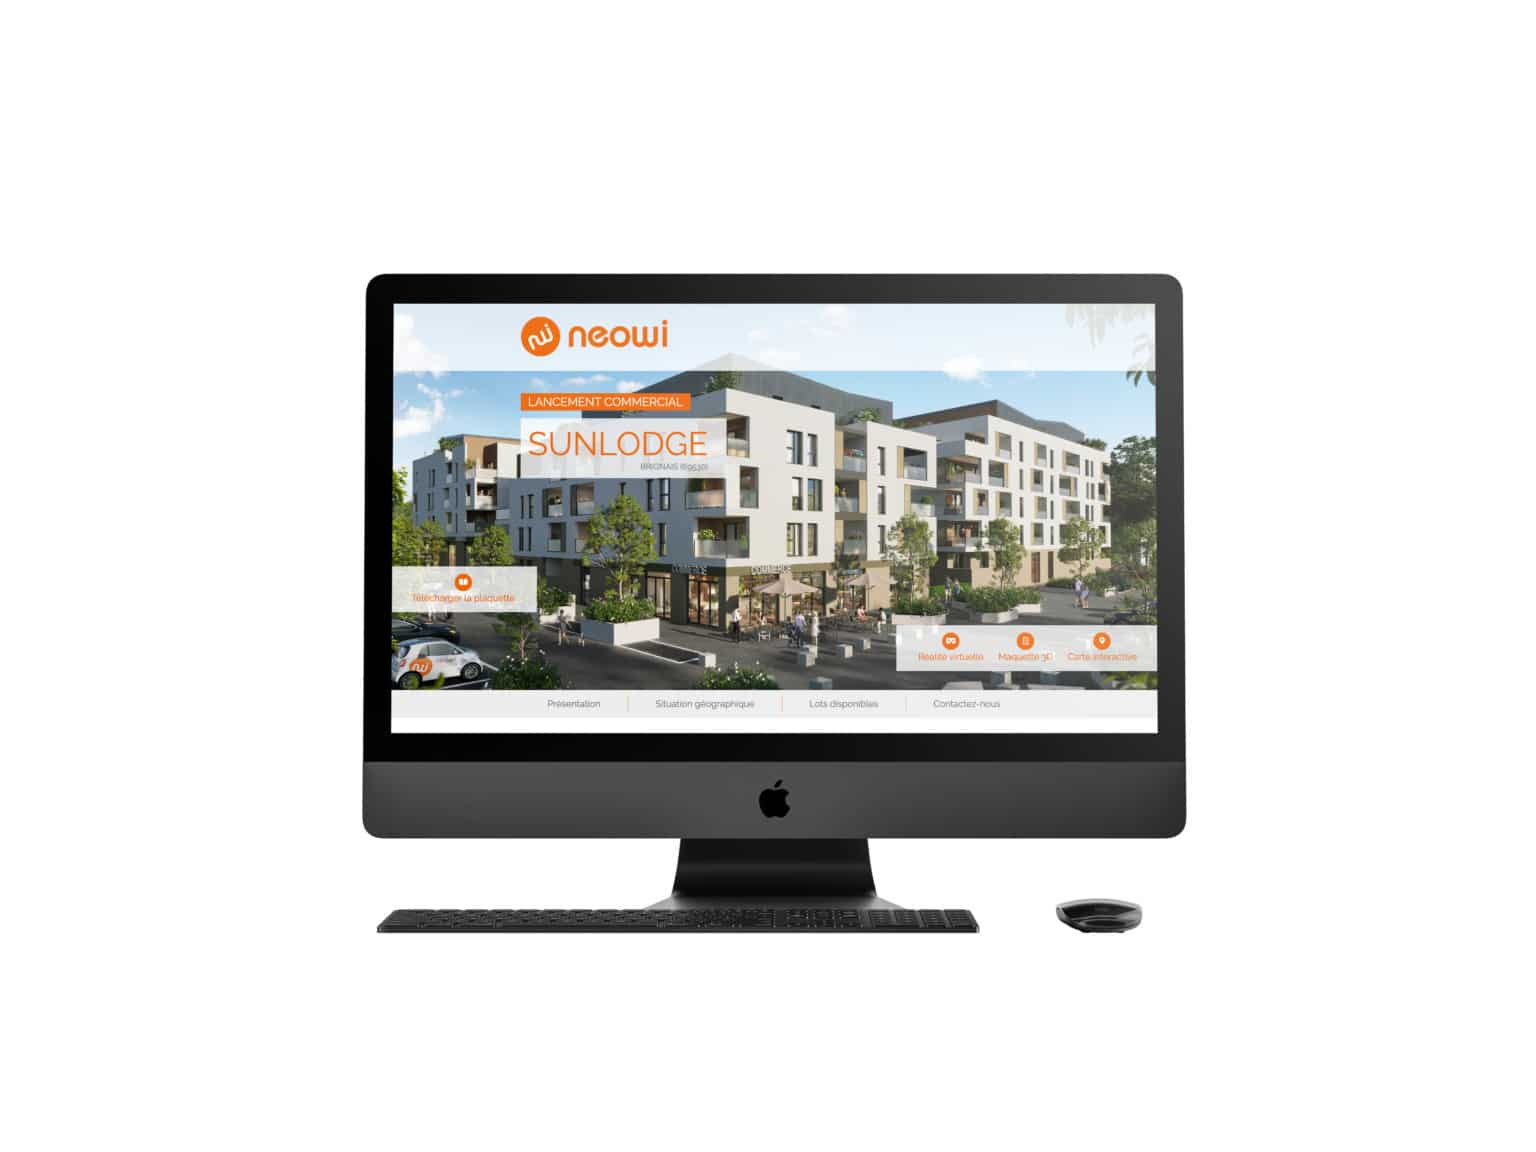 sunlodge neowi webdesign